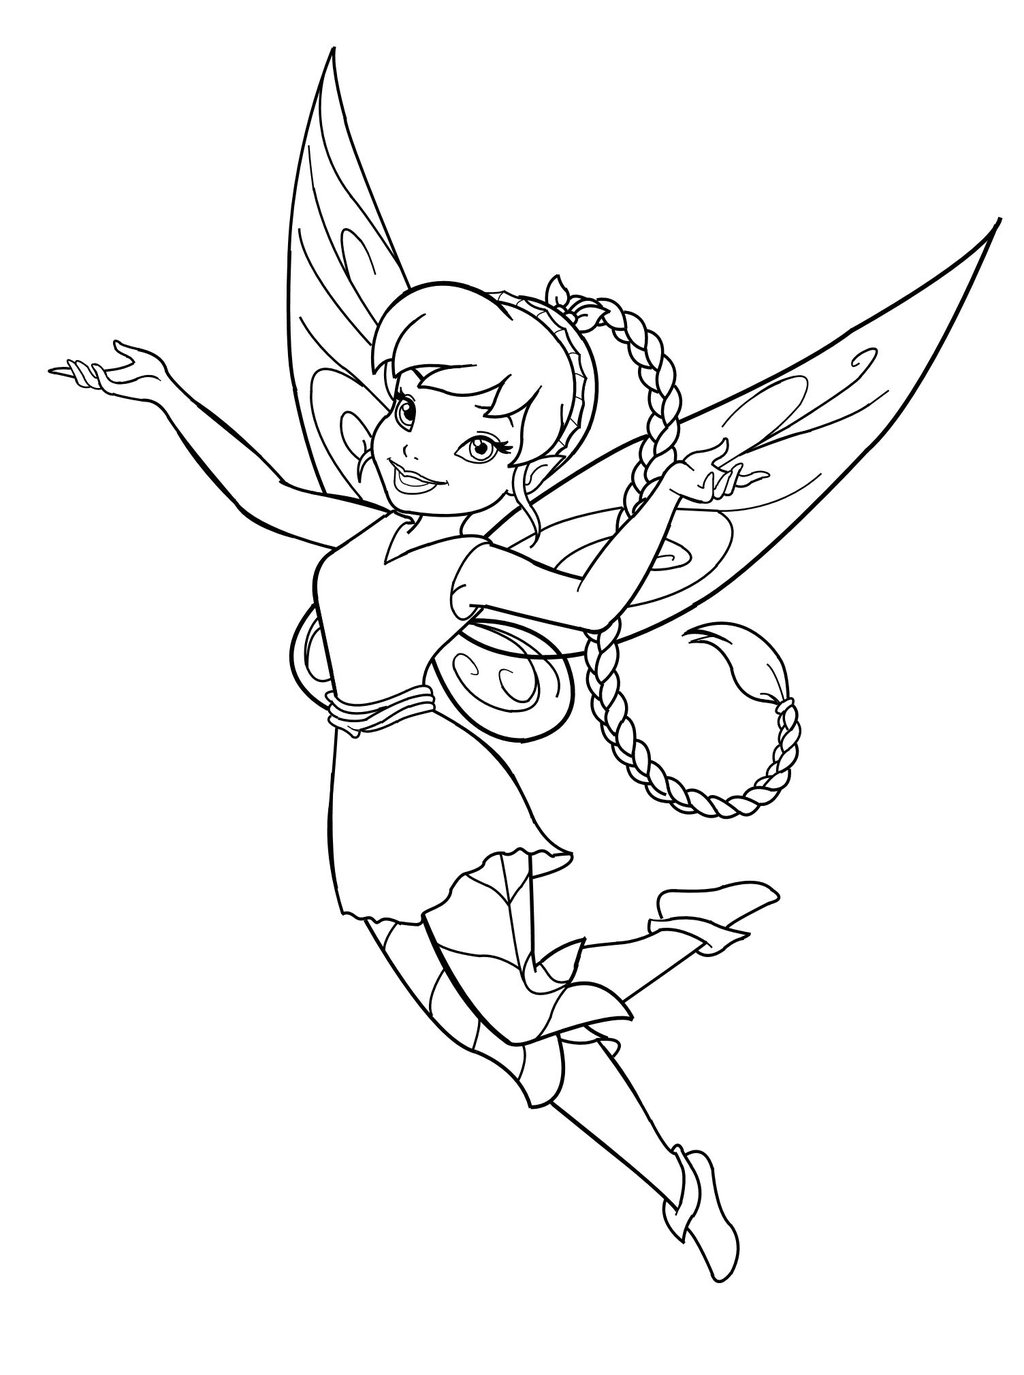 Free Printable Disney Fairies Coloring Pages For Kids Free Tinkerbell Coloring Pages